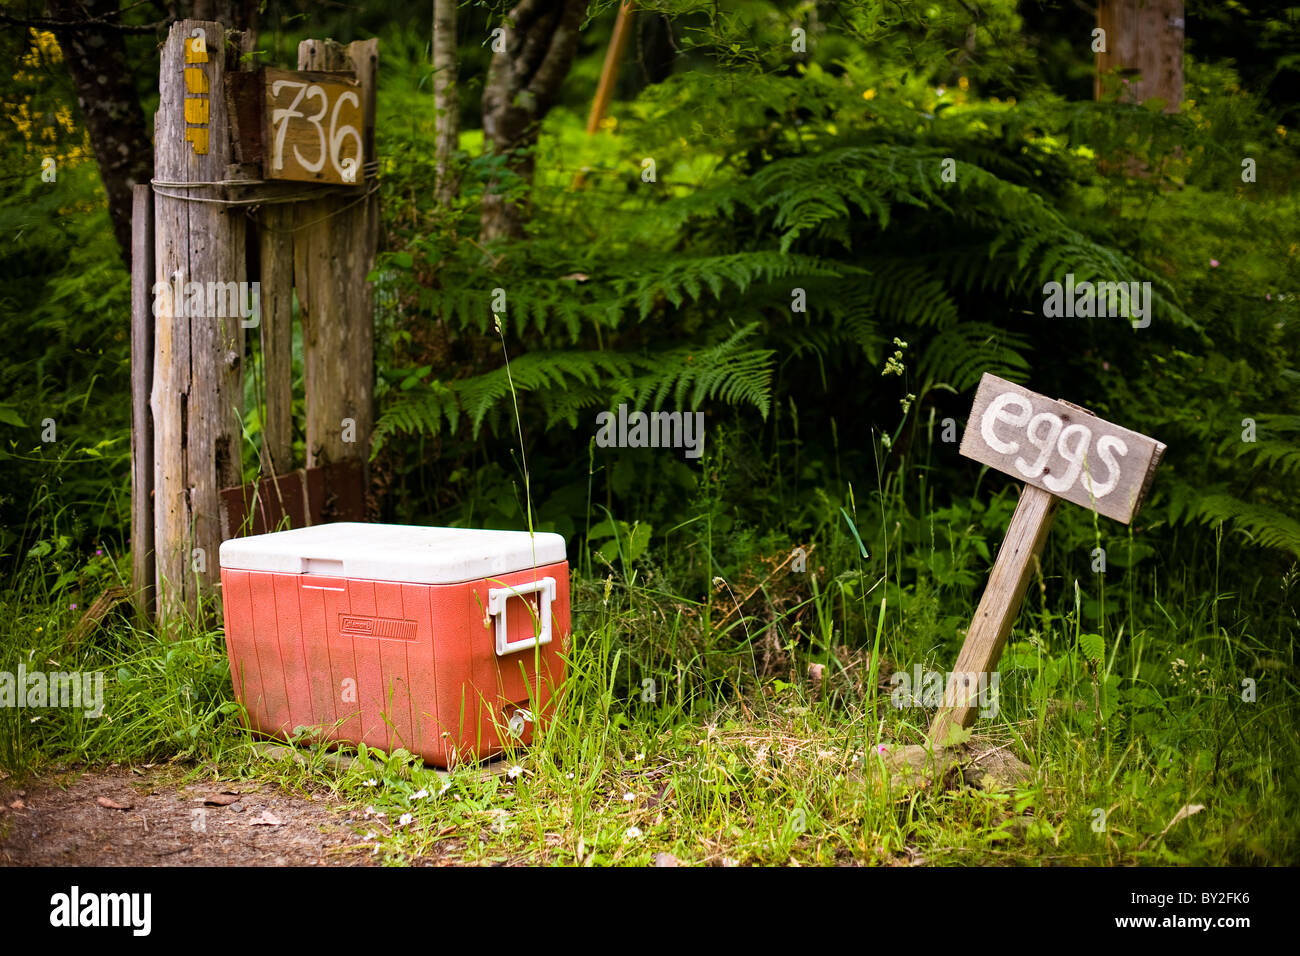 Eggs for sale in an orange cooler by the side of the road. - Stock Image